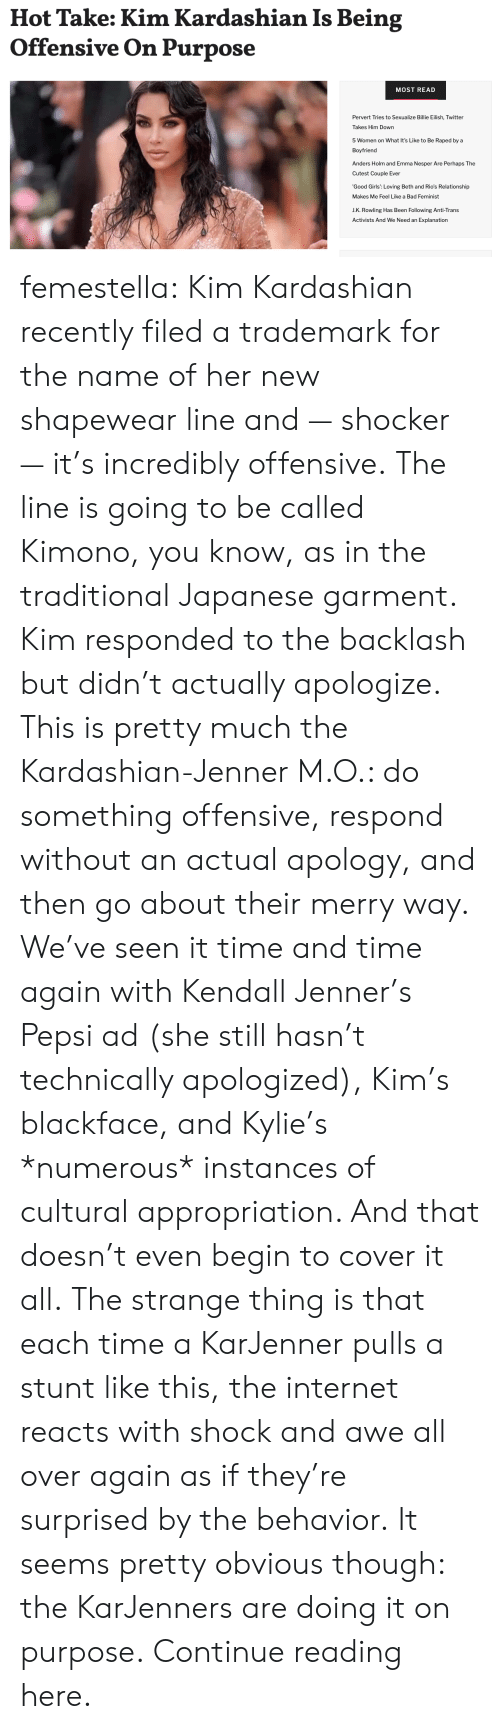 Kardashian: Hot Take: Kim Kardashian Is Being  Offensive On Purpose  MOST READ  Pervert Tries to Sexualize Billie Eilish, Twitter  Takes Him Down  5 Women on What It's Like to Be Raped by a  Boyfriend  Anders Holm and Emma Nesper Are Perhaps The  Cutest Couple Ever  'Good Girls': Loving Beth and Rio's Relationship  Makes Me Feel Like a Bad Feminist  J.K. Rowling Has Been Following Anti-Trans  Activists And We Need an Explanation femestella: Kim Kardashian recently filed a trademark for the name of her new shapewear line and — shocker — it's incredibly offensive. The line is going to be called Kimono, you know, as in the traditional Japanese garment.  Kim responded to the backlash but didn't actually apologize. This is pretty much the Kardashian-Jenner M.O.: do something offensive, respond without an actual apology, and then go about their merry way. We've seen it time and time again with Kendall Jenner's Pepsi ad (she still hasn't technically apologized), Kim's blackface, and Kylie's *numerous* instances of cultural appropriation. And that doesn't even begin to cover it all. The strange thing is that each time a KarJenner pulls a stunt like this, the internet reacts with shock and awe all over again as if they're surprised by the behavior. It seems pretty obvious though: the KarJenners are doing it on purpose. Continue reading here.